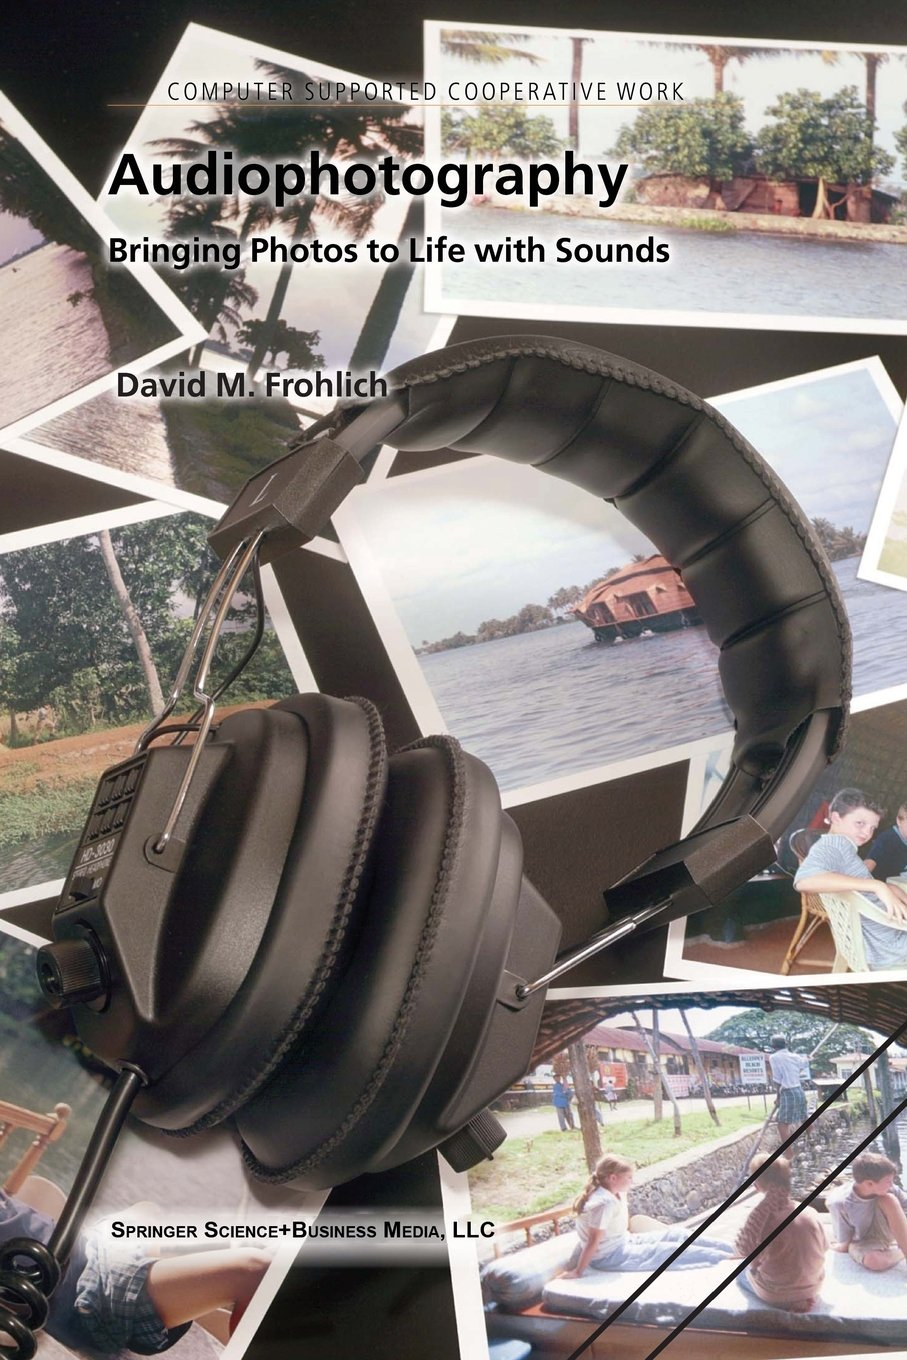 Audiophotography: Bringing Photos to Life with Sounds free download